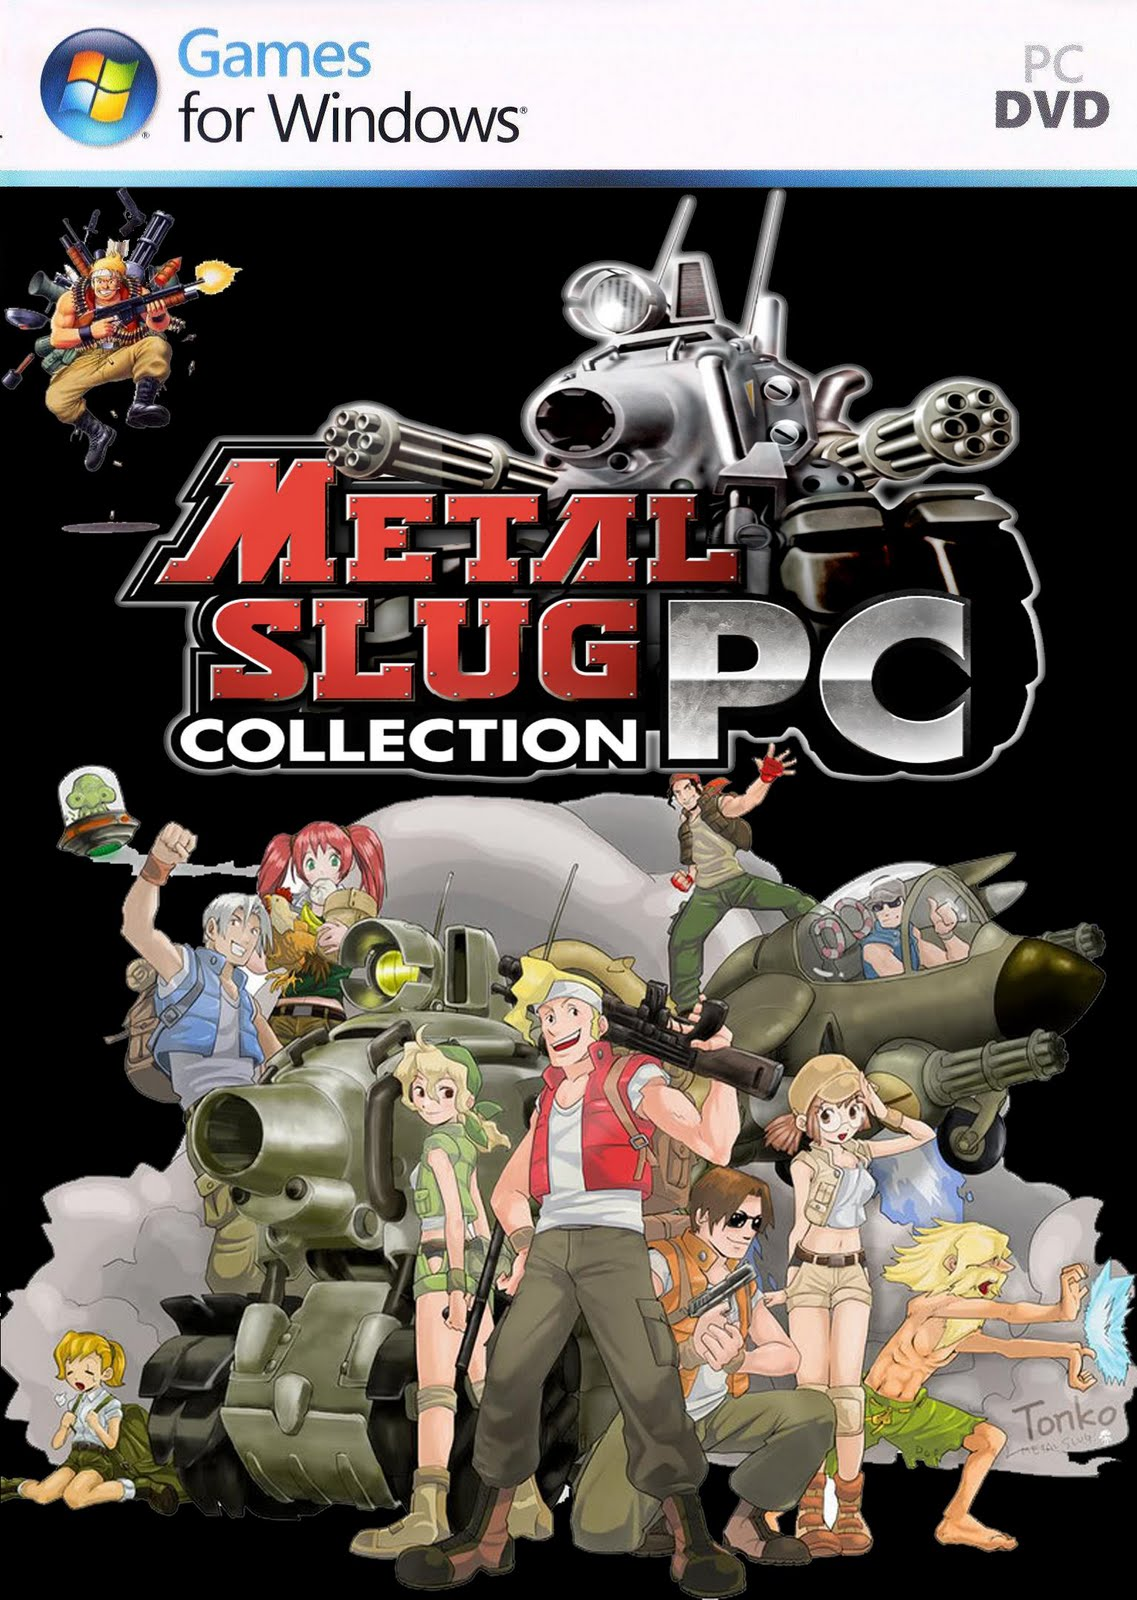 Metal Slug PC Collection [Español] [Full - ISO] - Lemou's Links - Juegos PC Gratis en Descarga Directa